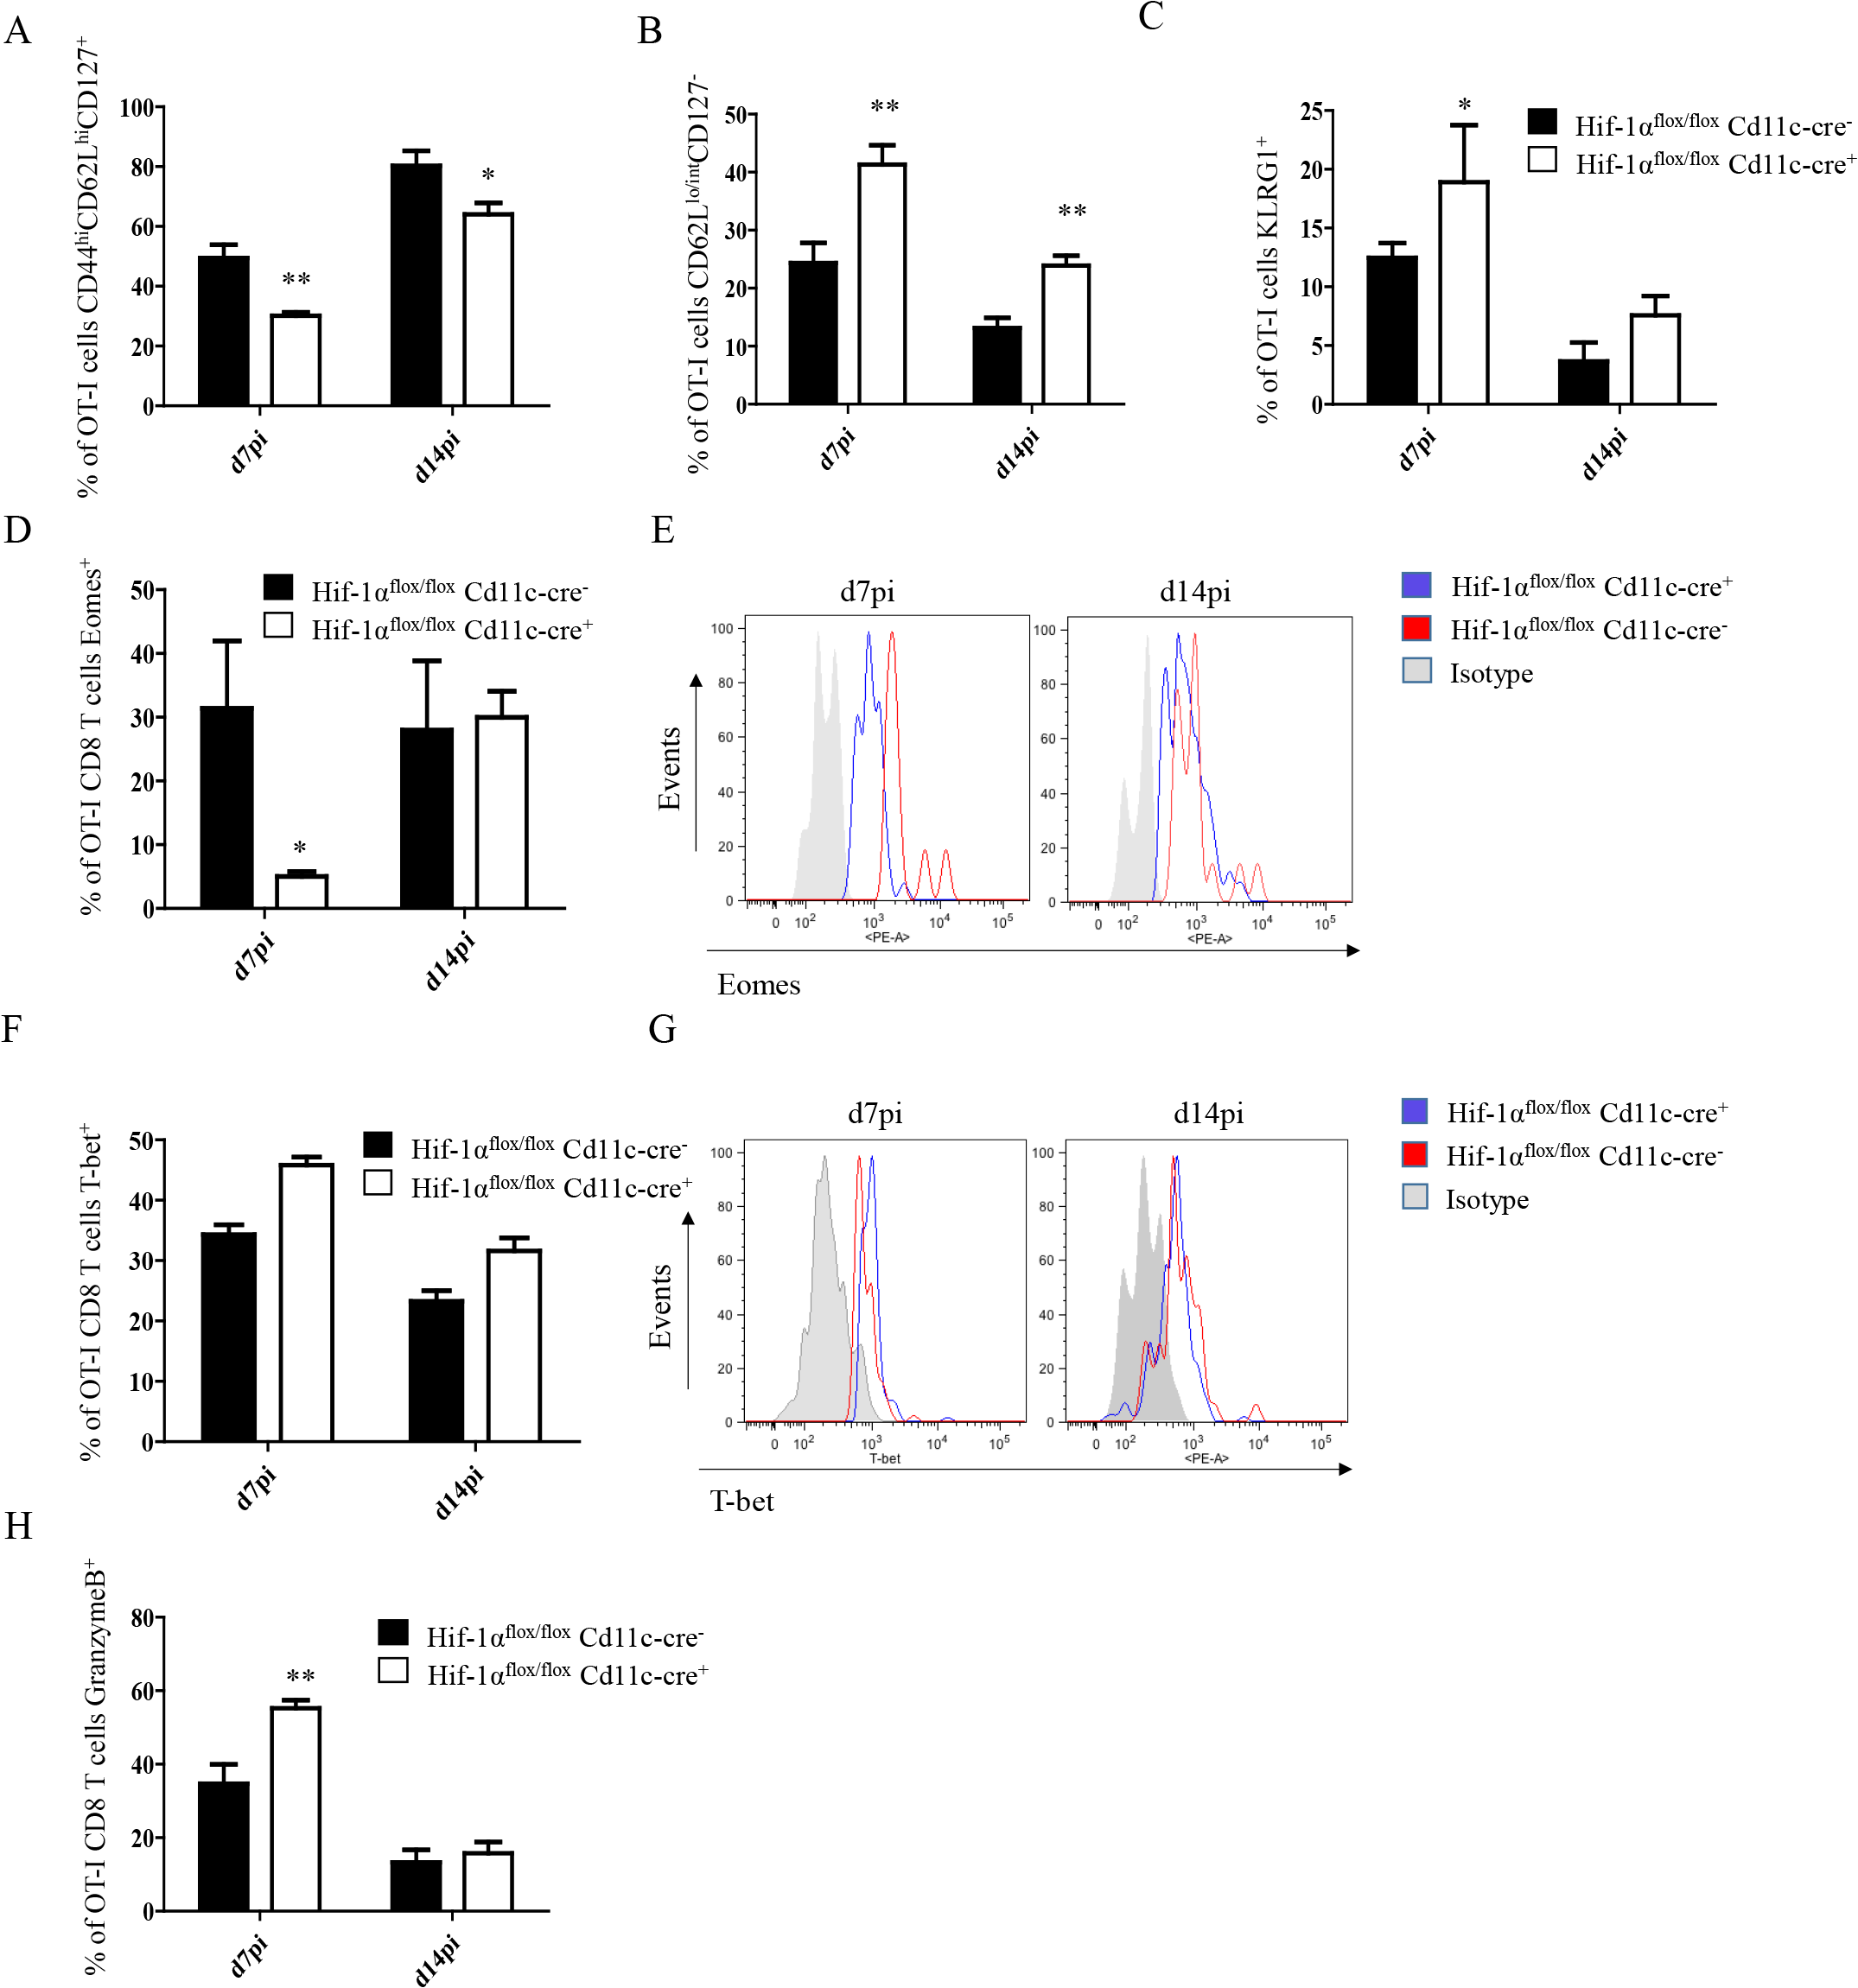 Depletion of HIF1α in CD11c<sup>+</sup> cells induces more SLECs during the acute phase of <i>L</i>. <i>donovani</i> infection.